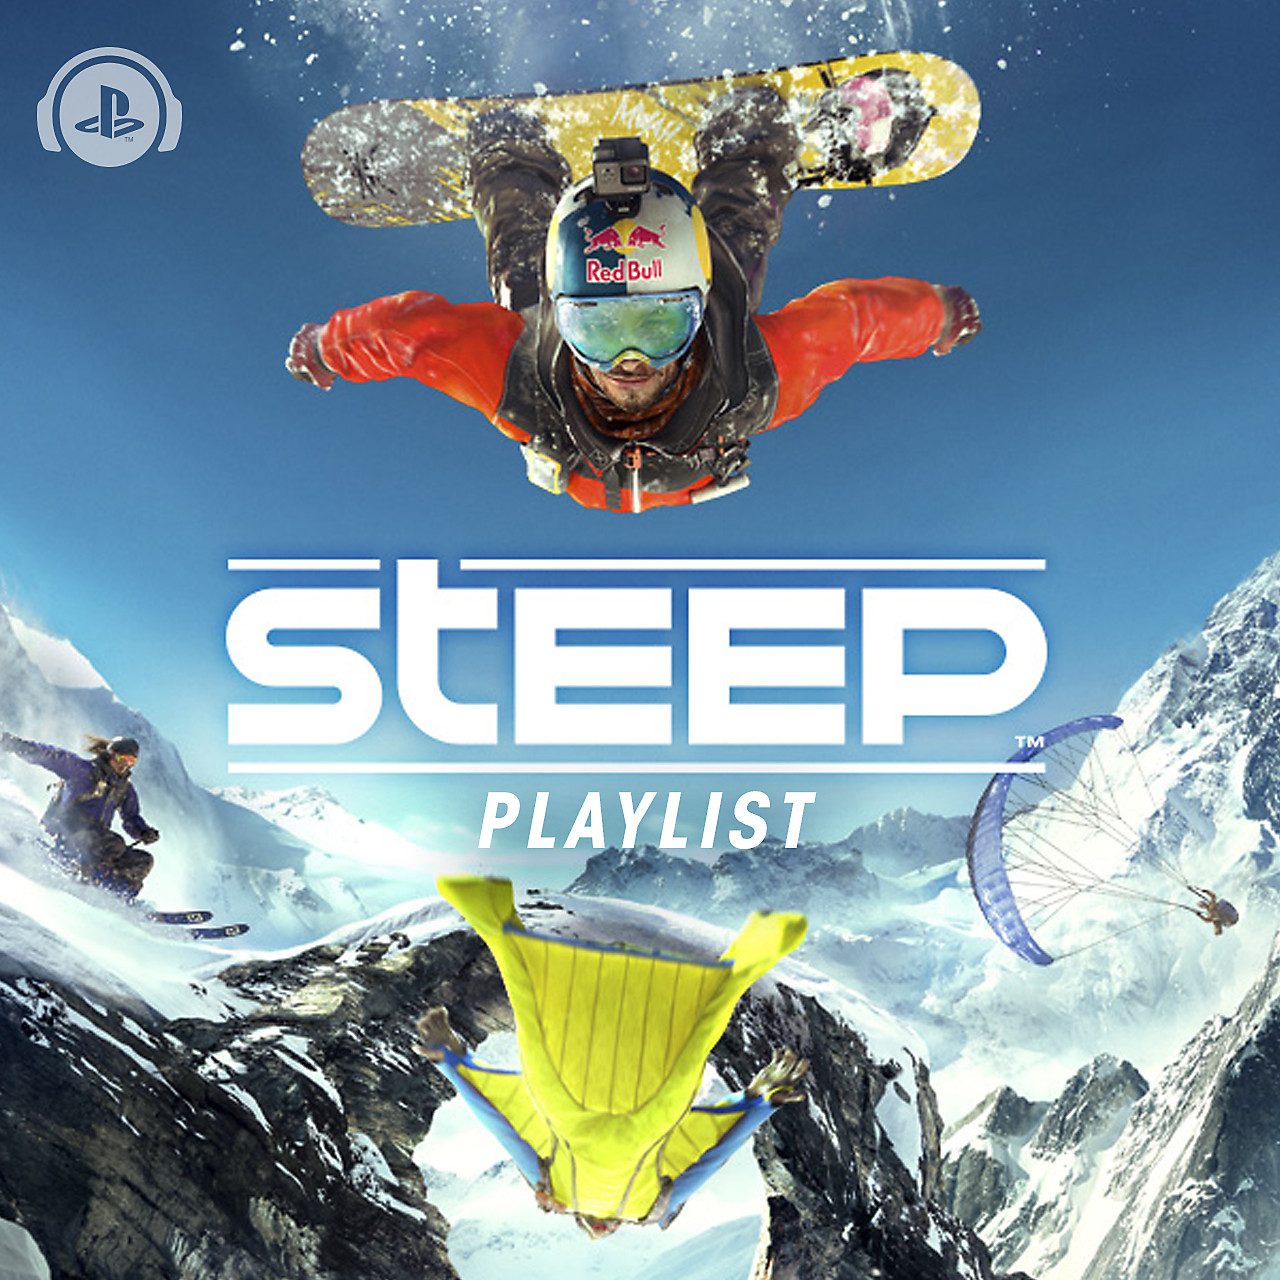 Steep Playlist on PlayStation Music